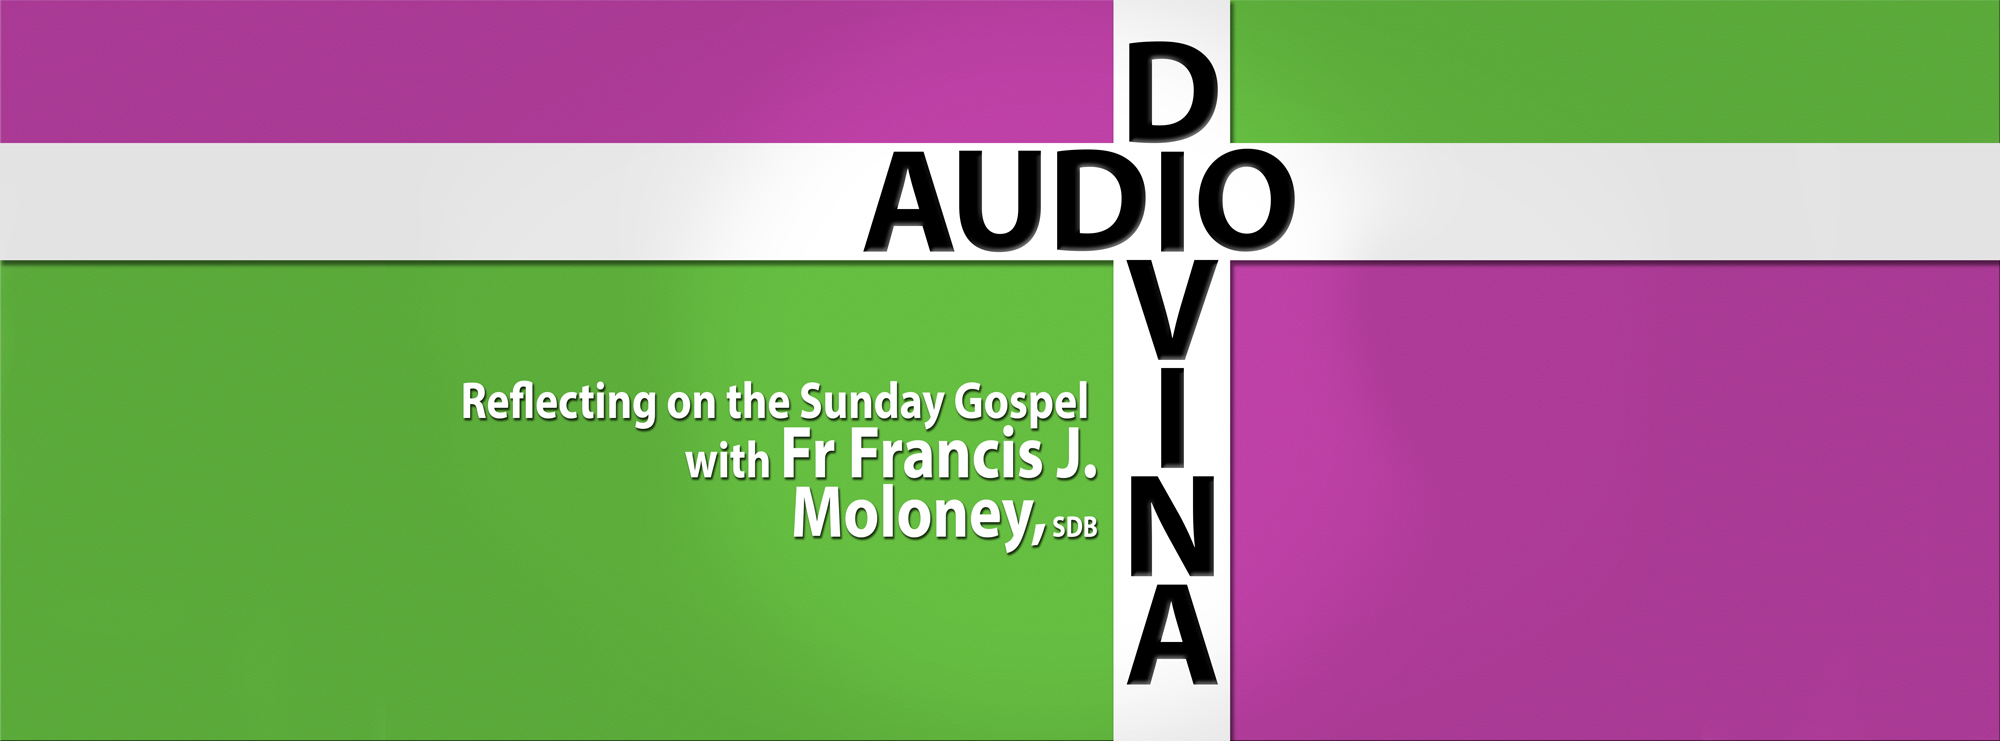 Audio Divina Logo